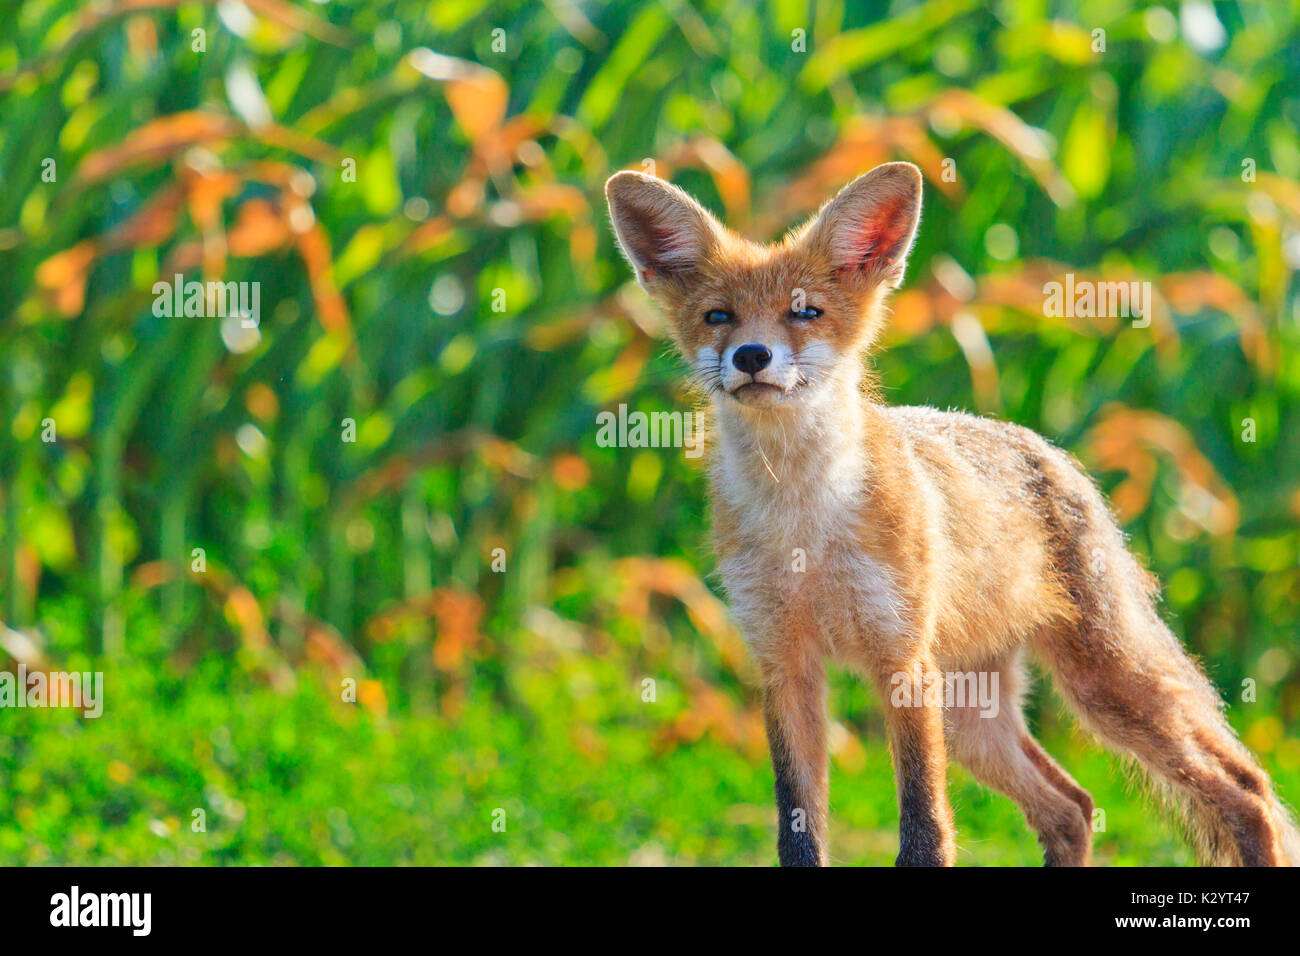 young fox with a smile on the face , wild nature - Stock Image